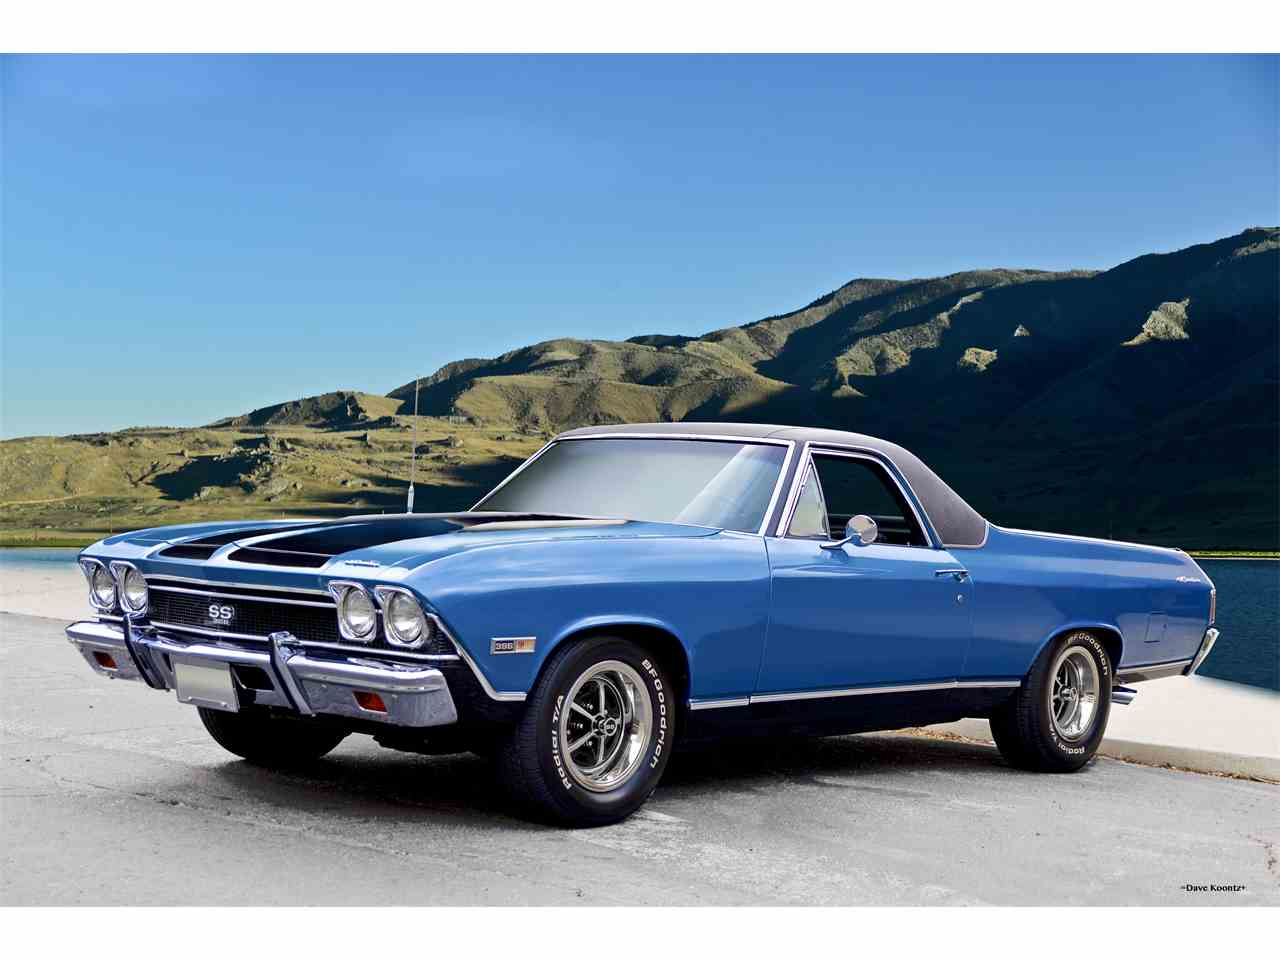 Chevy Muscle Cars >> 1968 Chevrolet El Camino SS for Sale | ClassicCars.com | CC-1055473